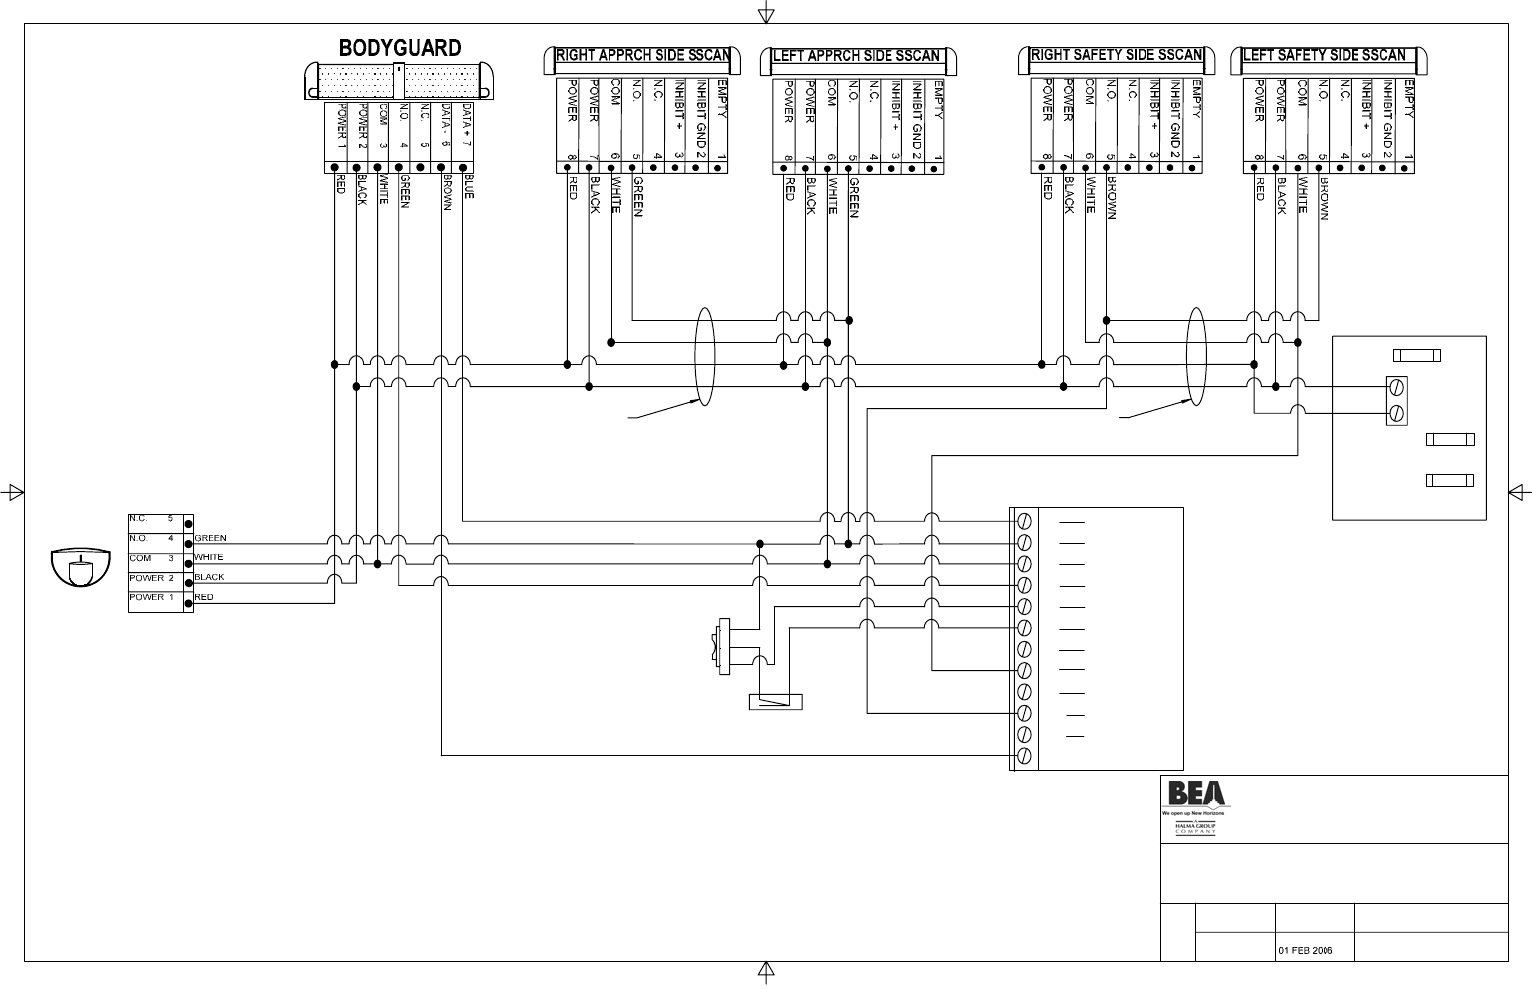 bg4 bea 80 0091 02, c2150 manual c4190 control, c3938 p s horton 4160 wiring diagram at gsmportal.co